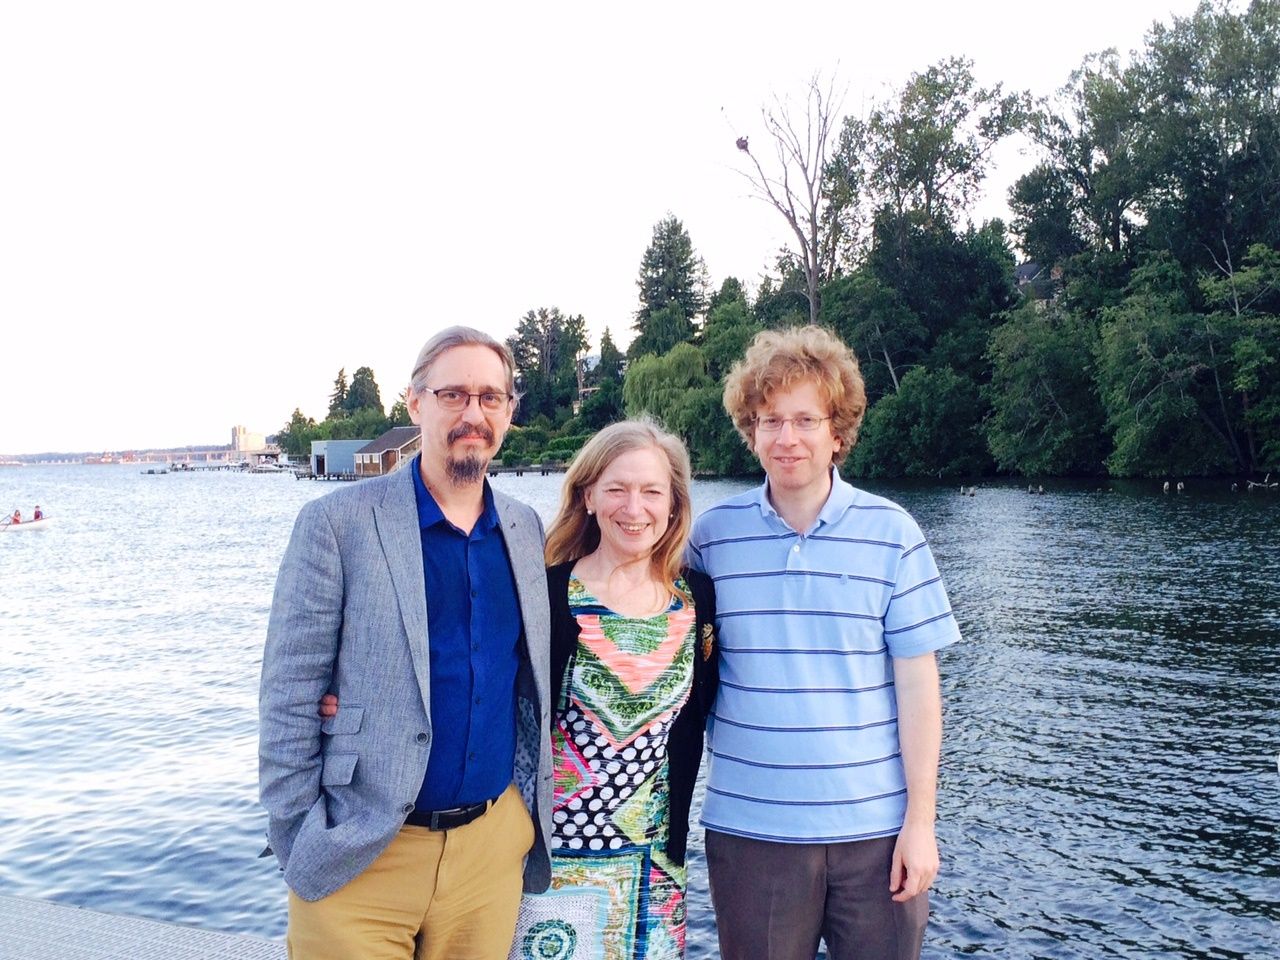 Aaron King, Betz Halloran, Ed Ionides, at Lake Washington. Bald eagle nest in the background.